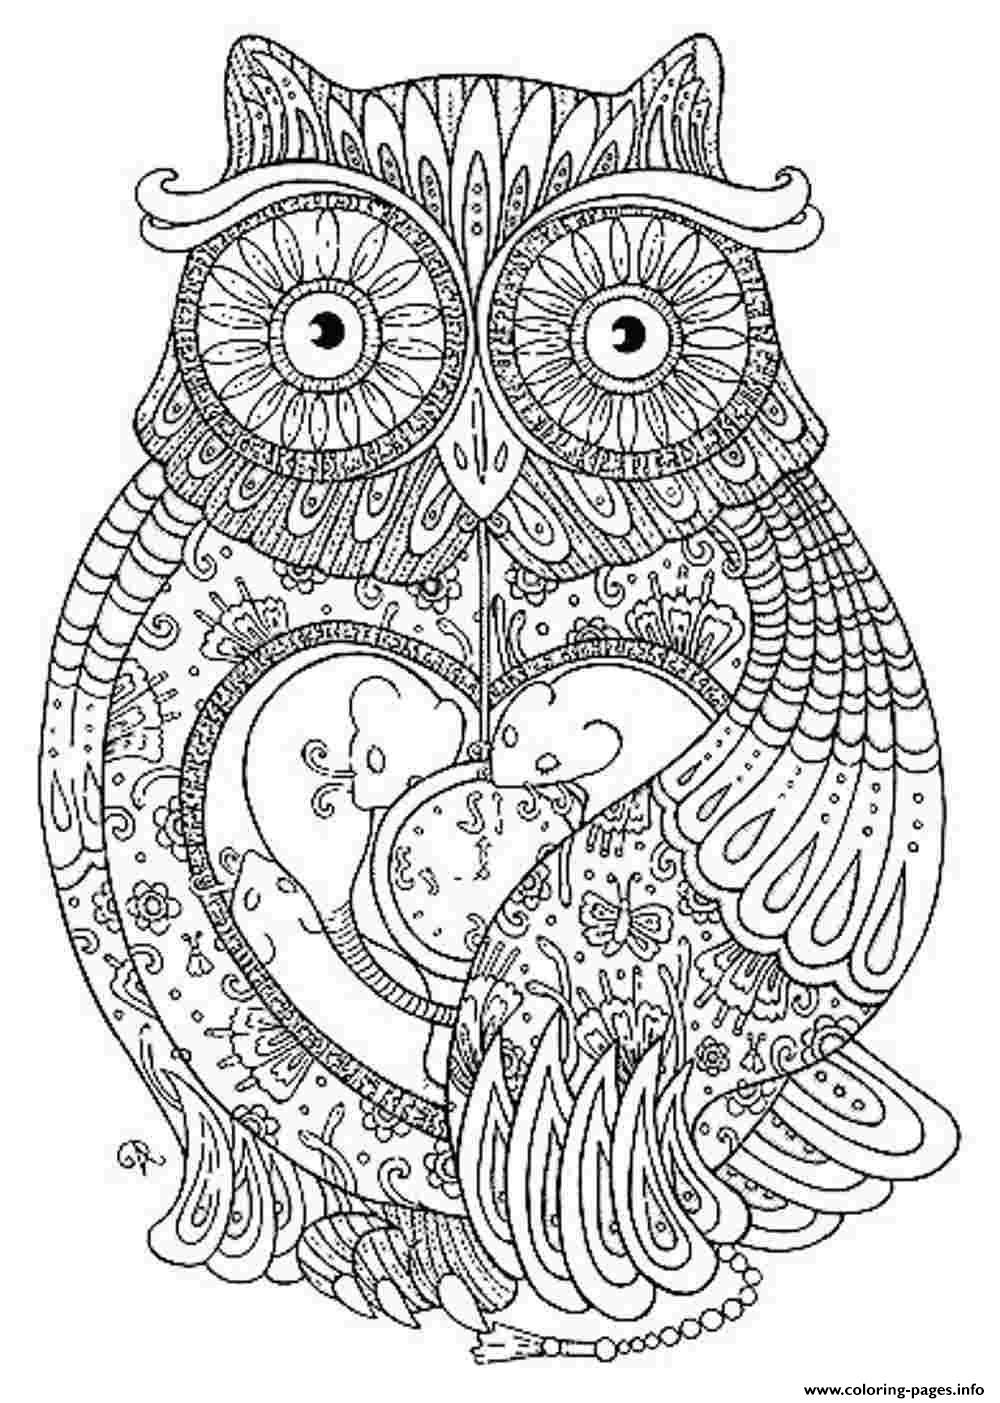 large animal coloring pages top 10 free printable farm animals coloring pages online large animal pages coloring